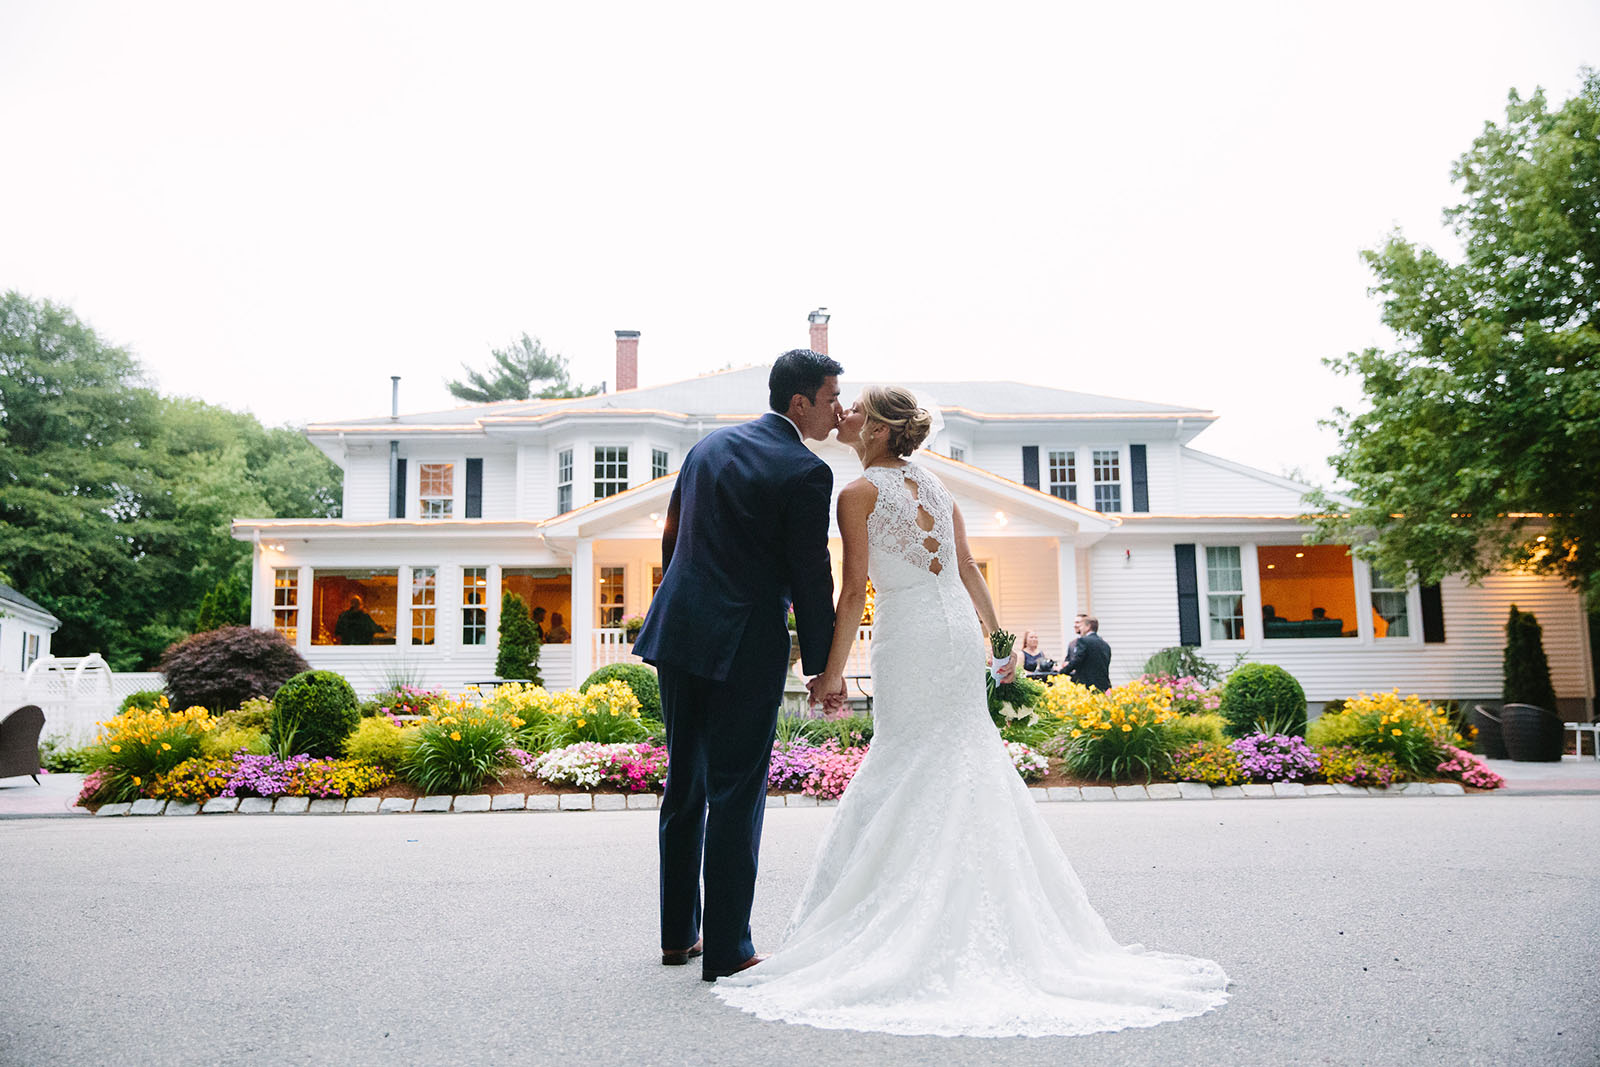 Estate wedding venue in MA